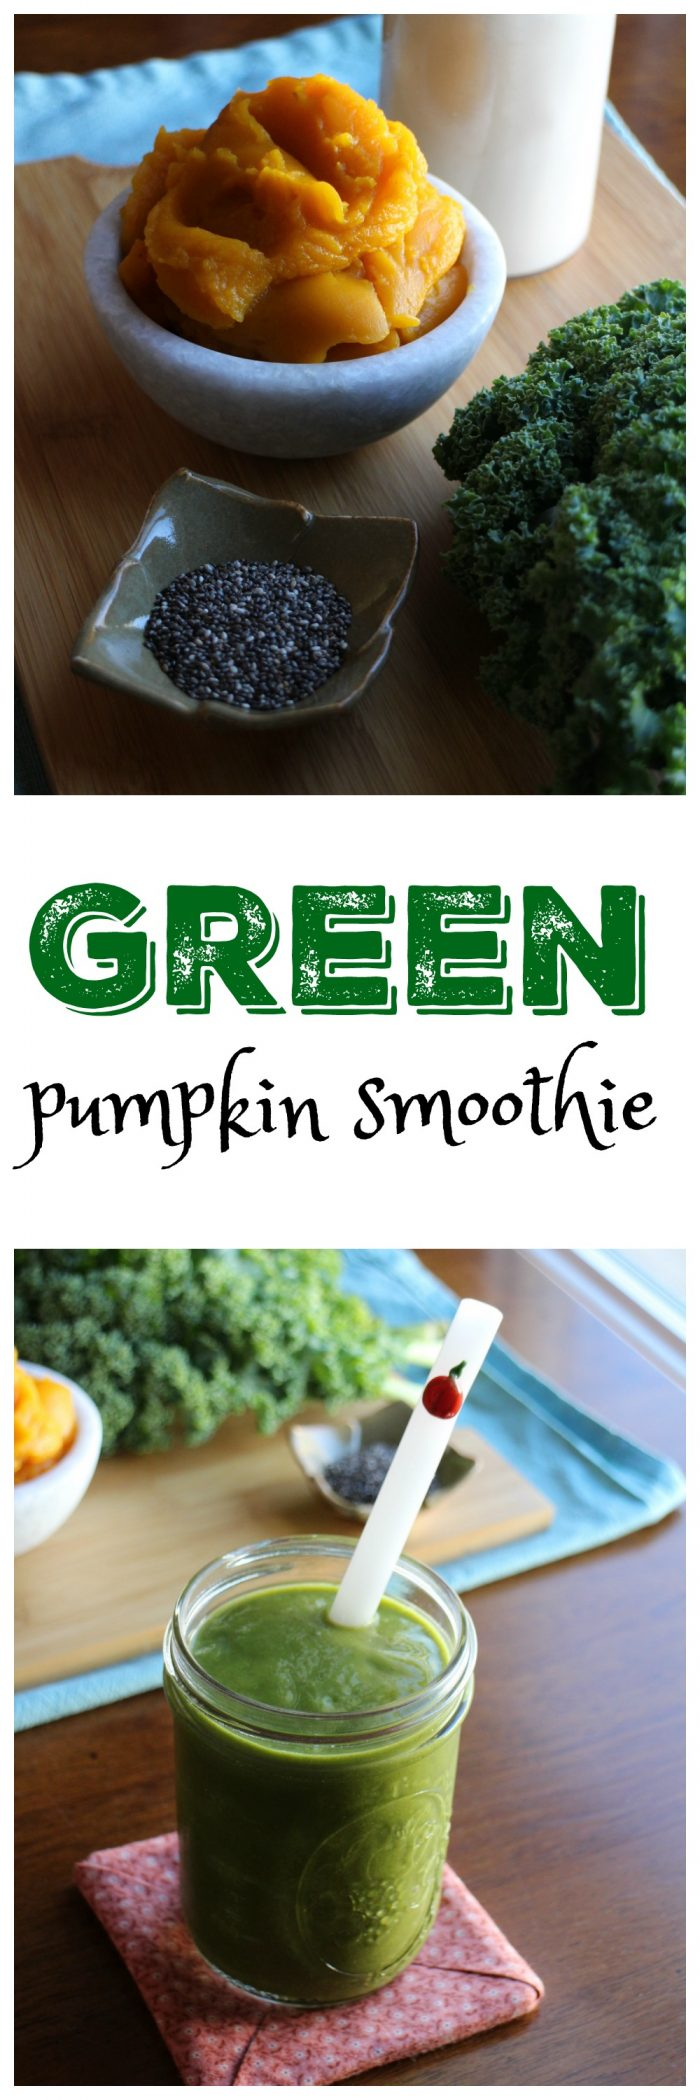 Green Pumpkin Smoothie: This autumnal vegan smoothie is packed with pumpkin, kale, bananas, and non-dairy milk. It's a delicious breakfast or anytime snack.   cadryskitchen.com